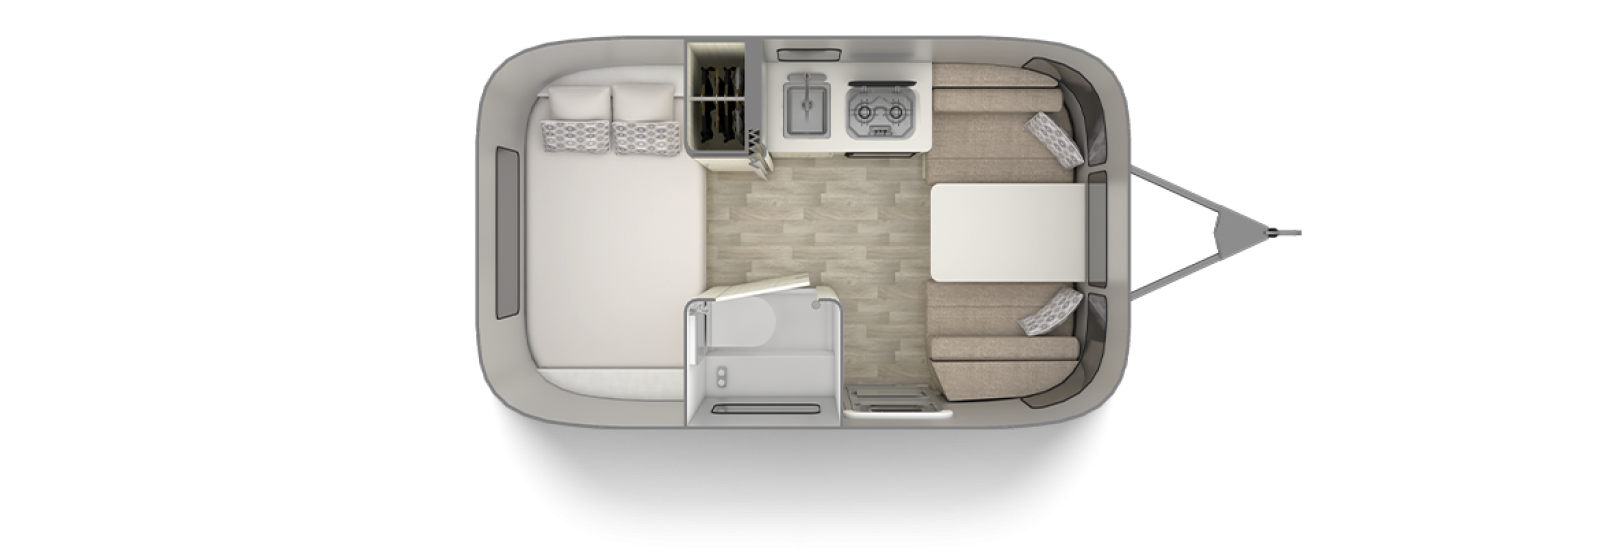 Bambi 16RB Floor Plan